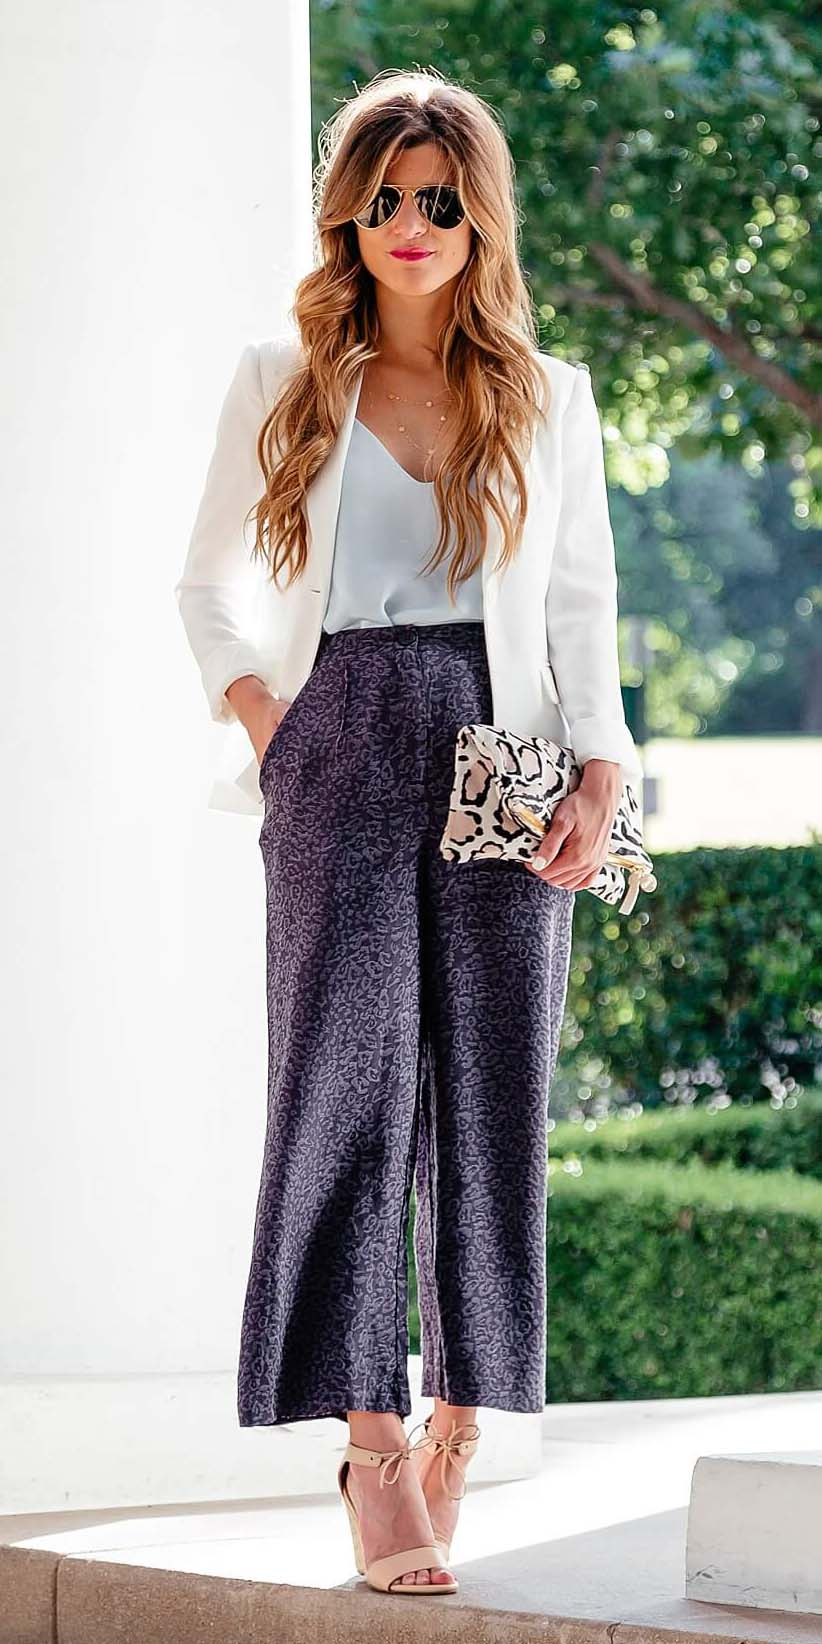 blue-navy-wideleg-pants-blue-light-cami-white-jacket-blazer-tan-shoe-sandalh-spring-summer-blonde-dinner.jpg